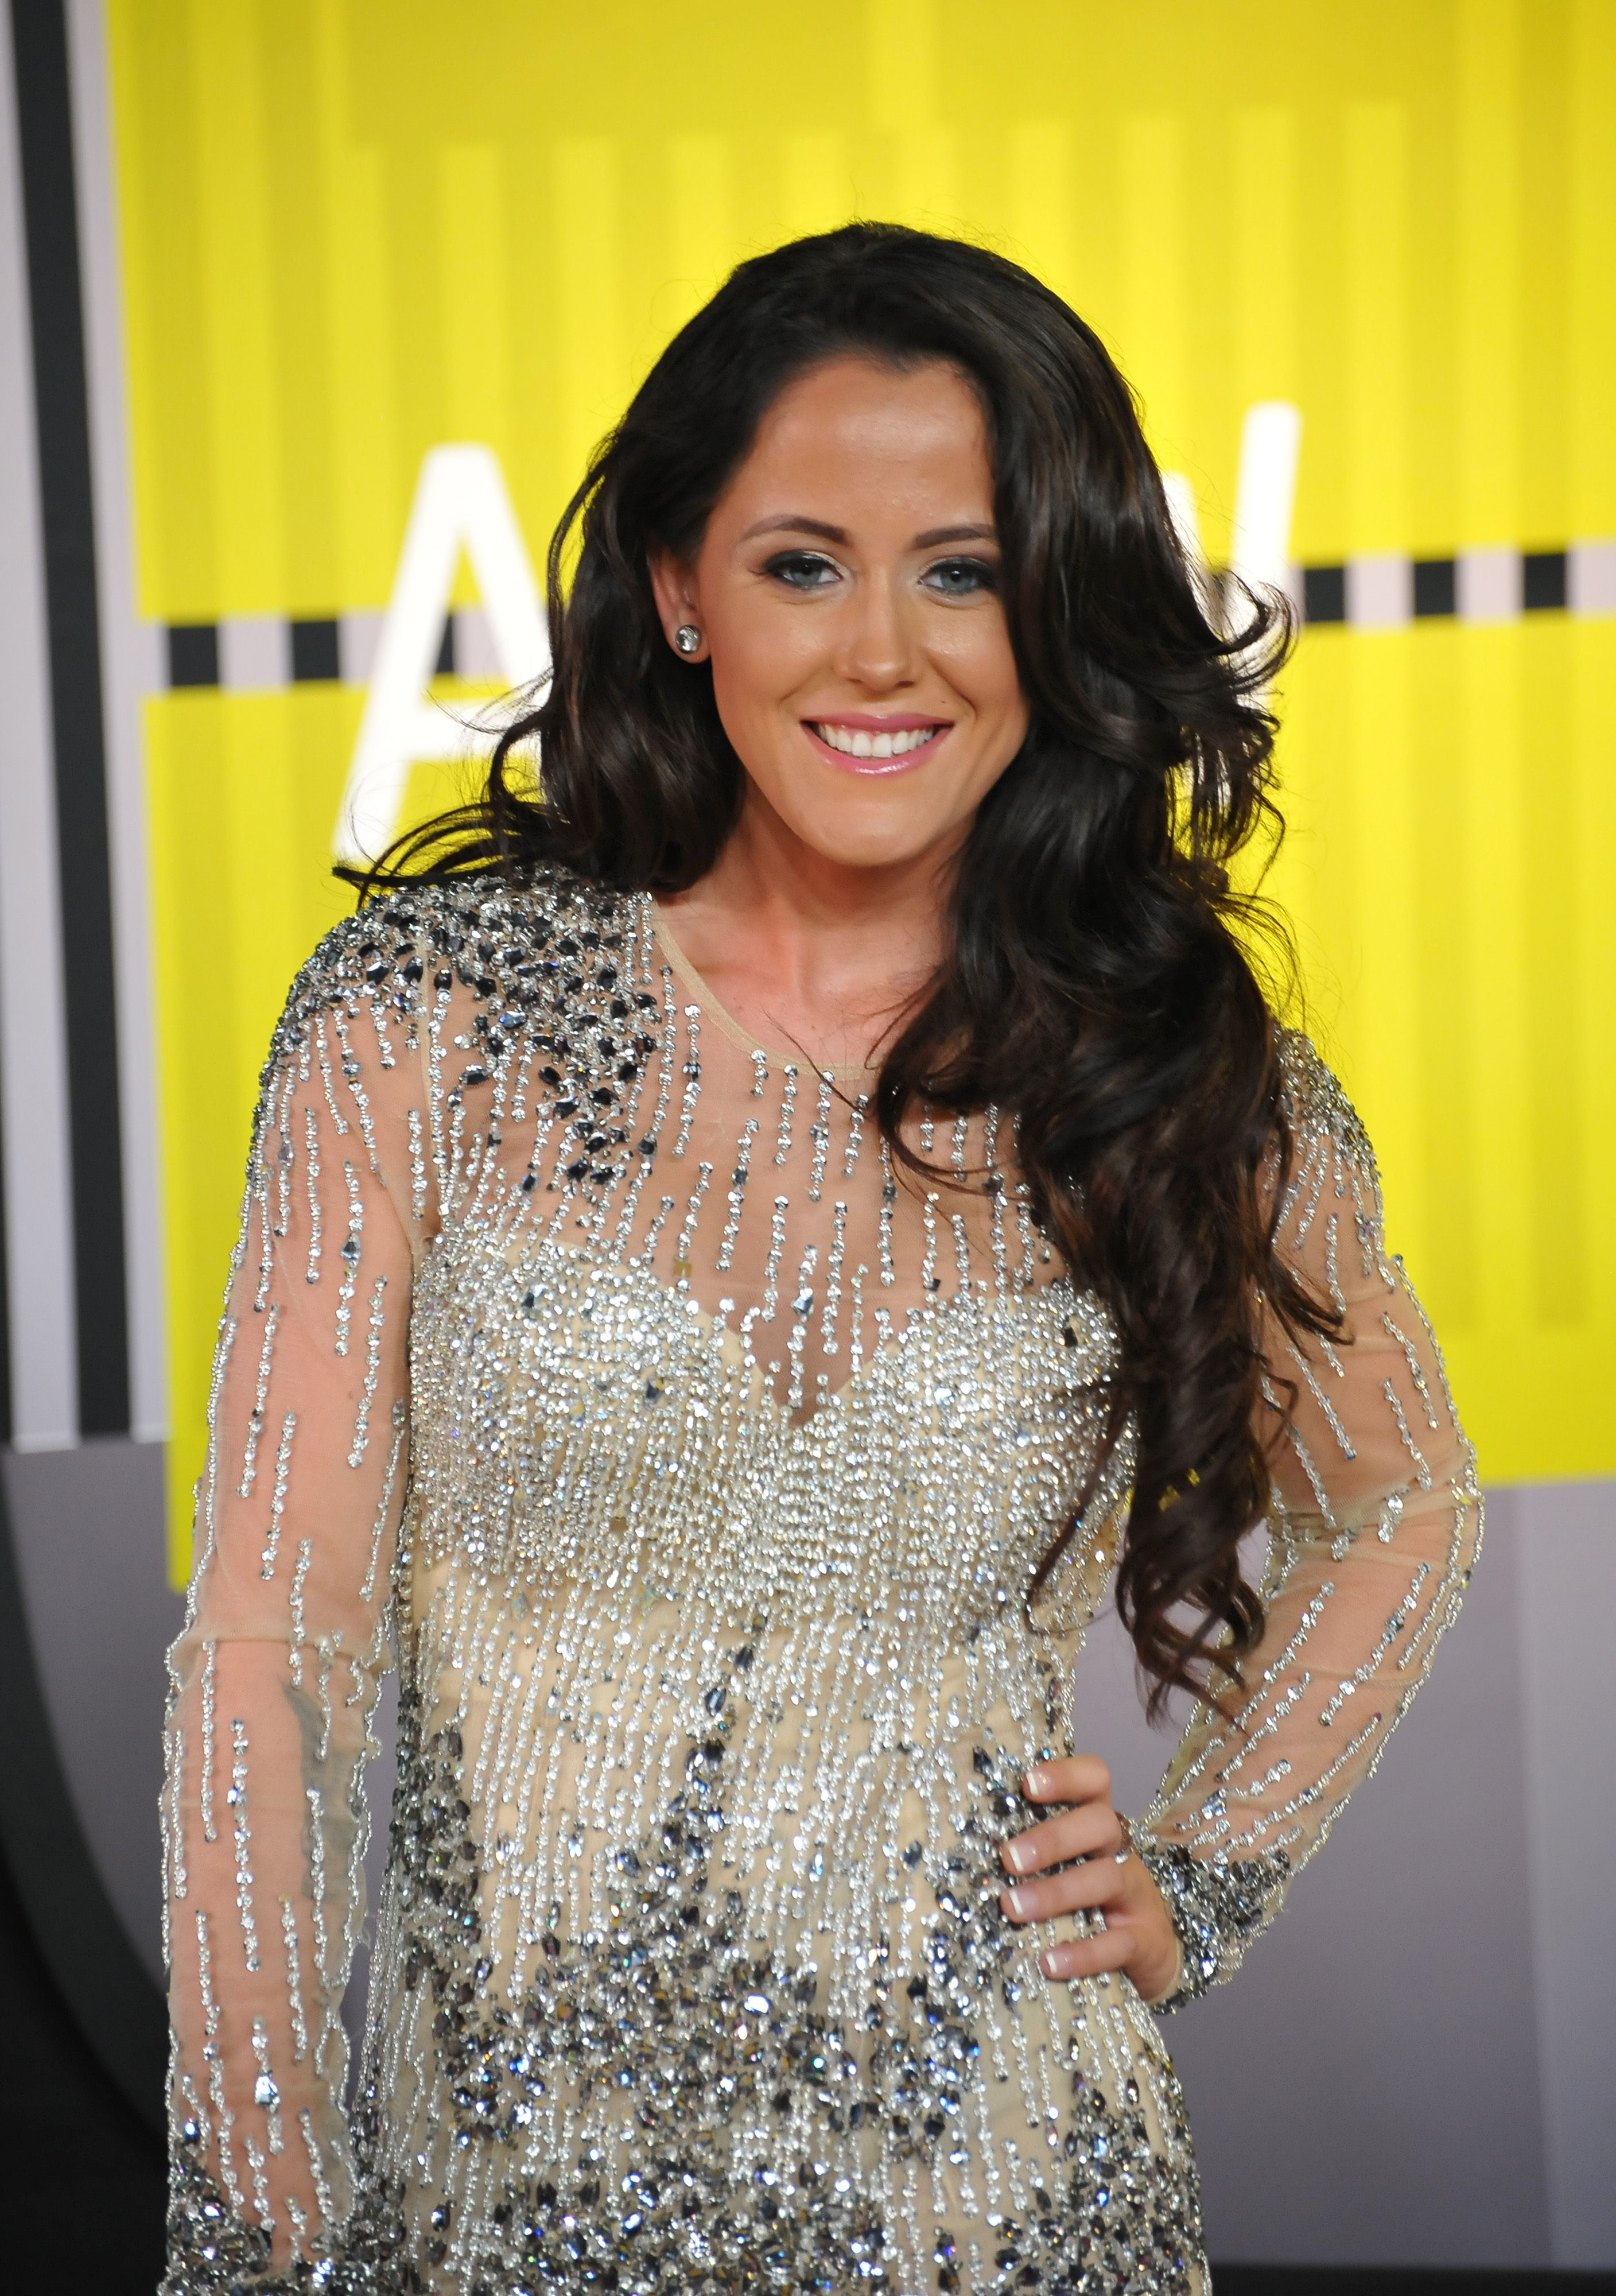 Jenelle Evans wears a beaded dress with sheer sleeves.